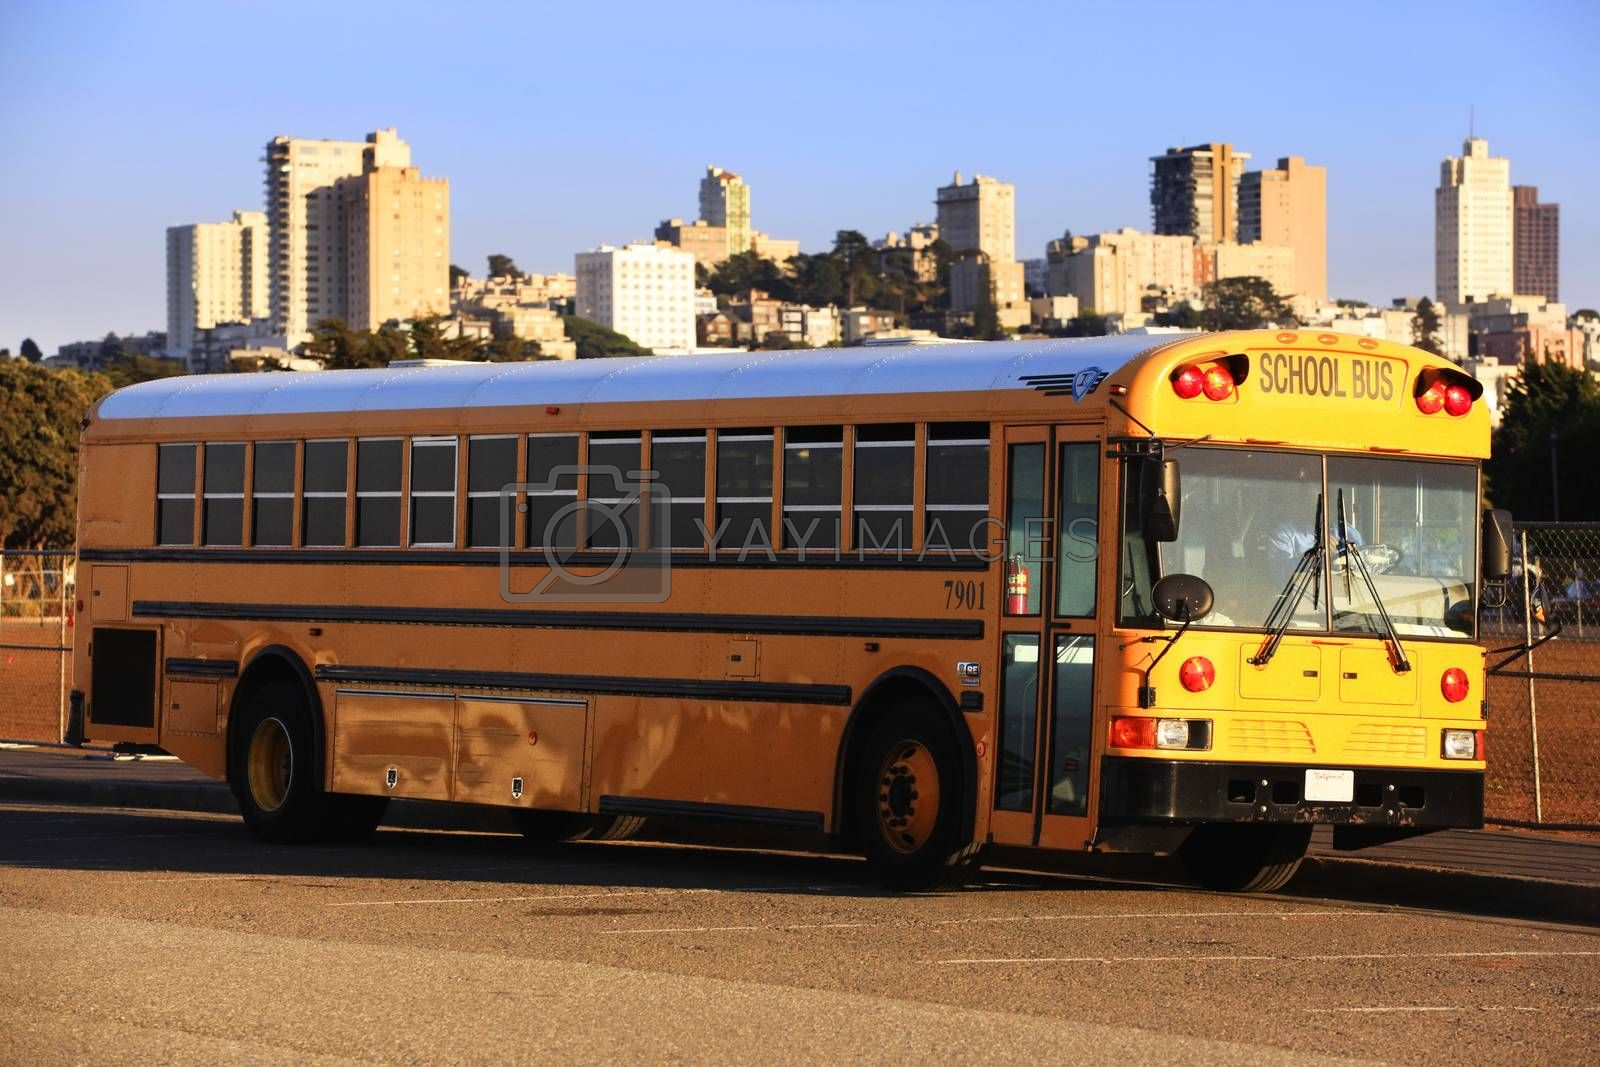 Traditional yellow school bus in San Francisco, America